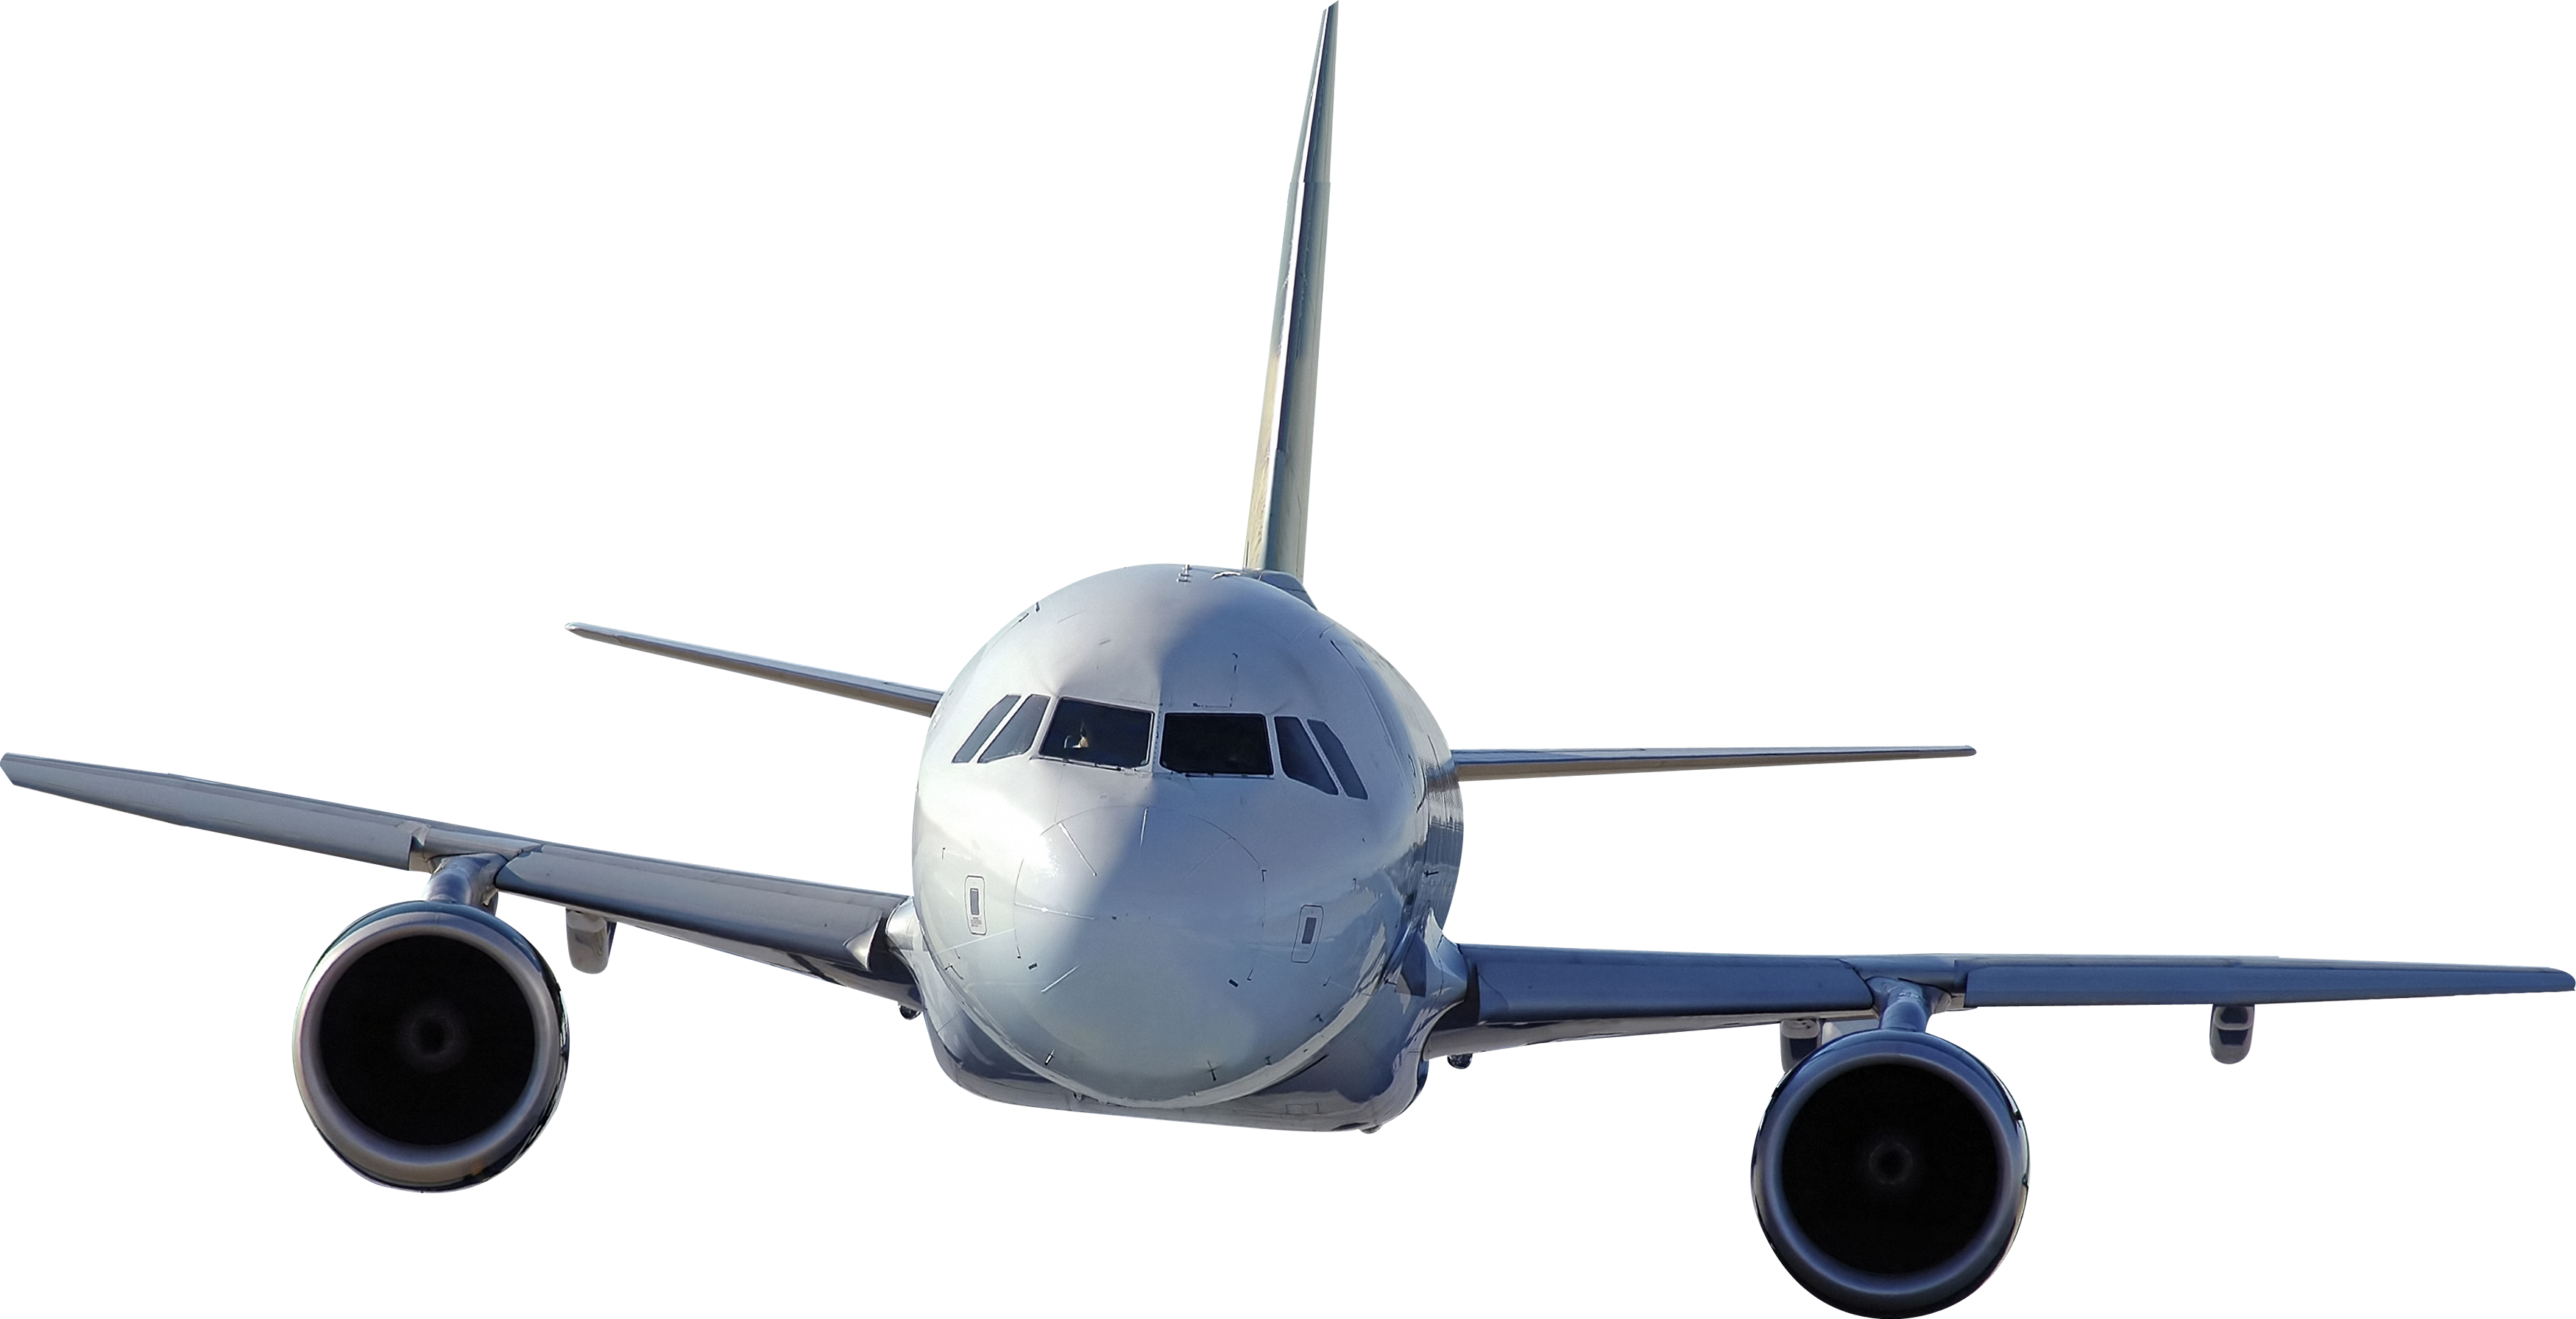 Transparent engine airplane. Planes png images free